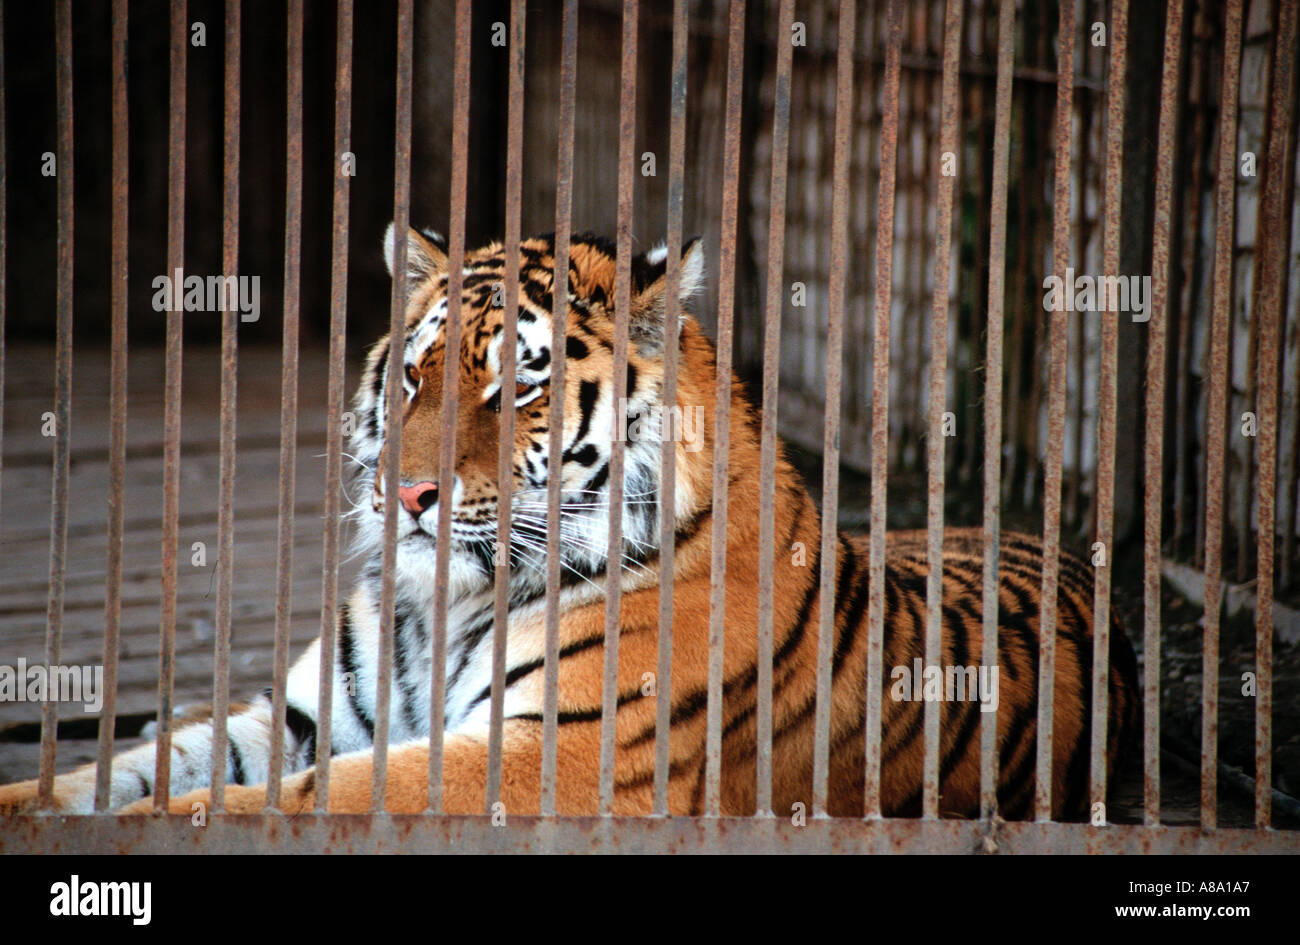 Tiger cage stock photos tiger cage stock images alamy - Tiger in cage images ...